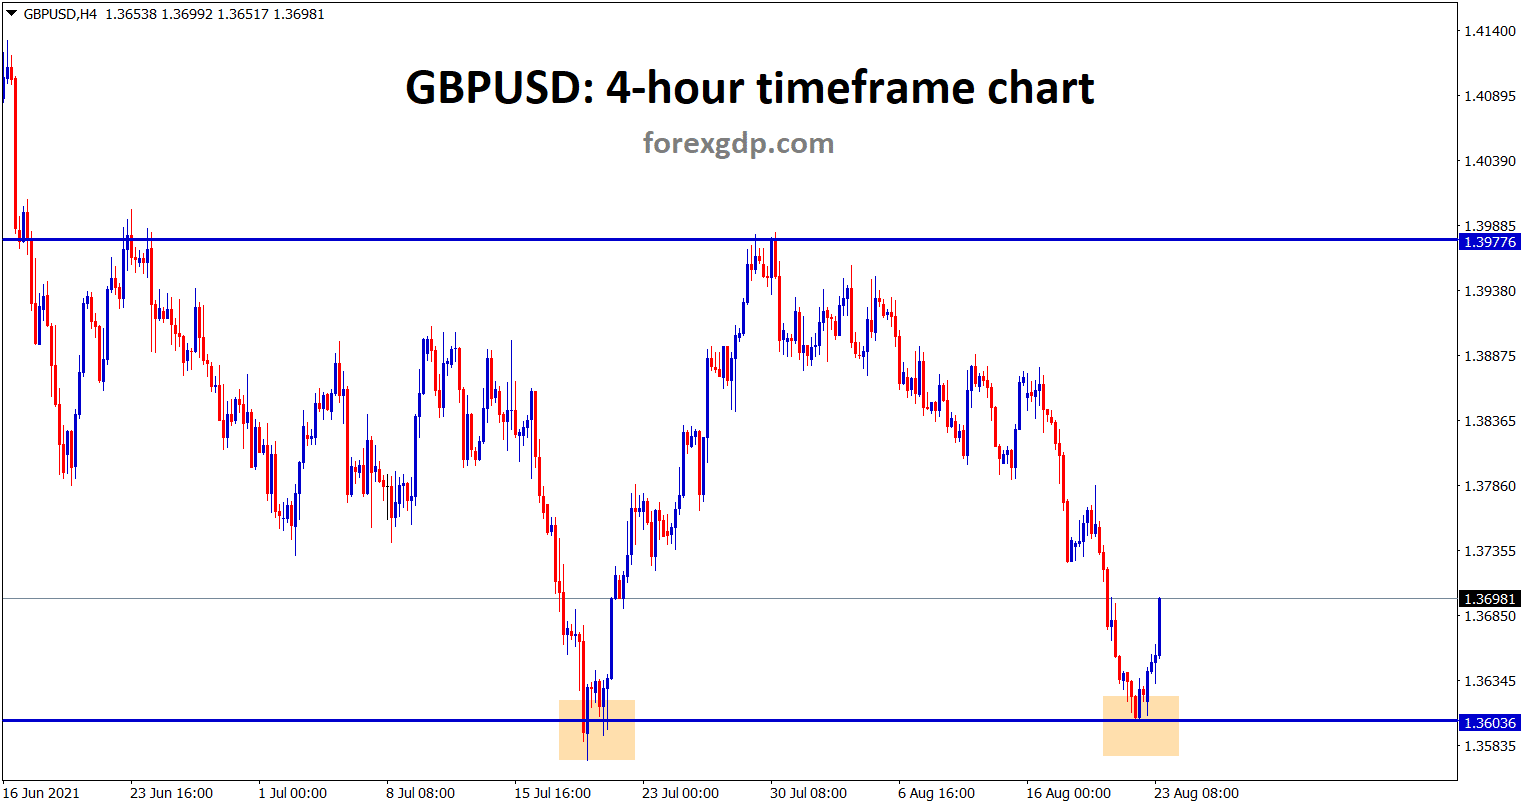 GBPUSD is rebounding from the support area it looks like double bottom